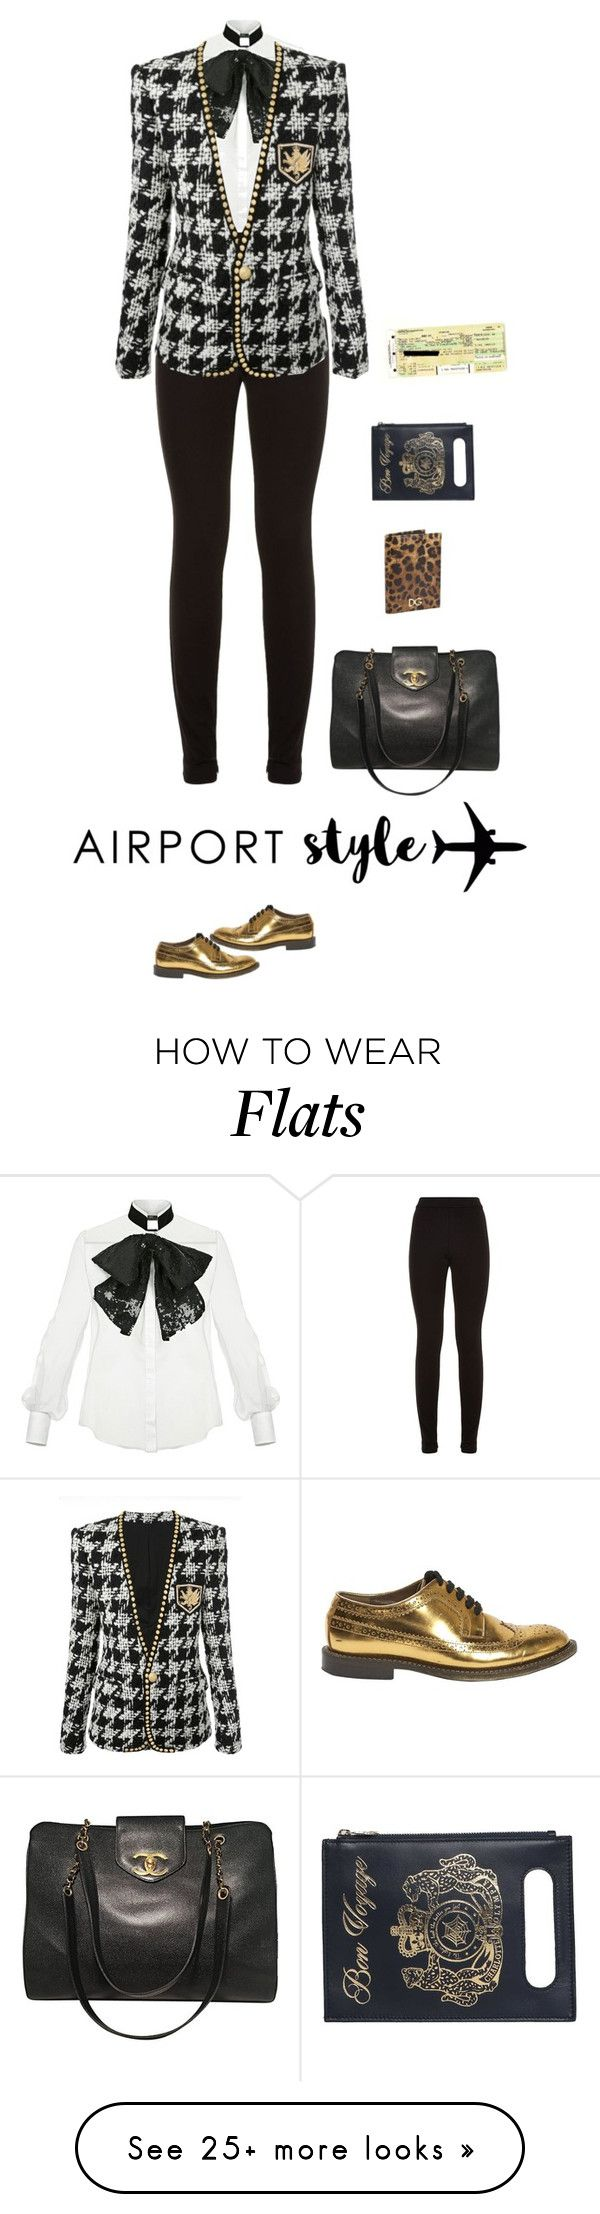 """Travel"" by andreearaiciu on Polyvore featuring Elisabetta Franchi, Theory, Charlotte Olympia, Marni, Dolce&Gabbana, Chanel and Plane"